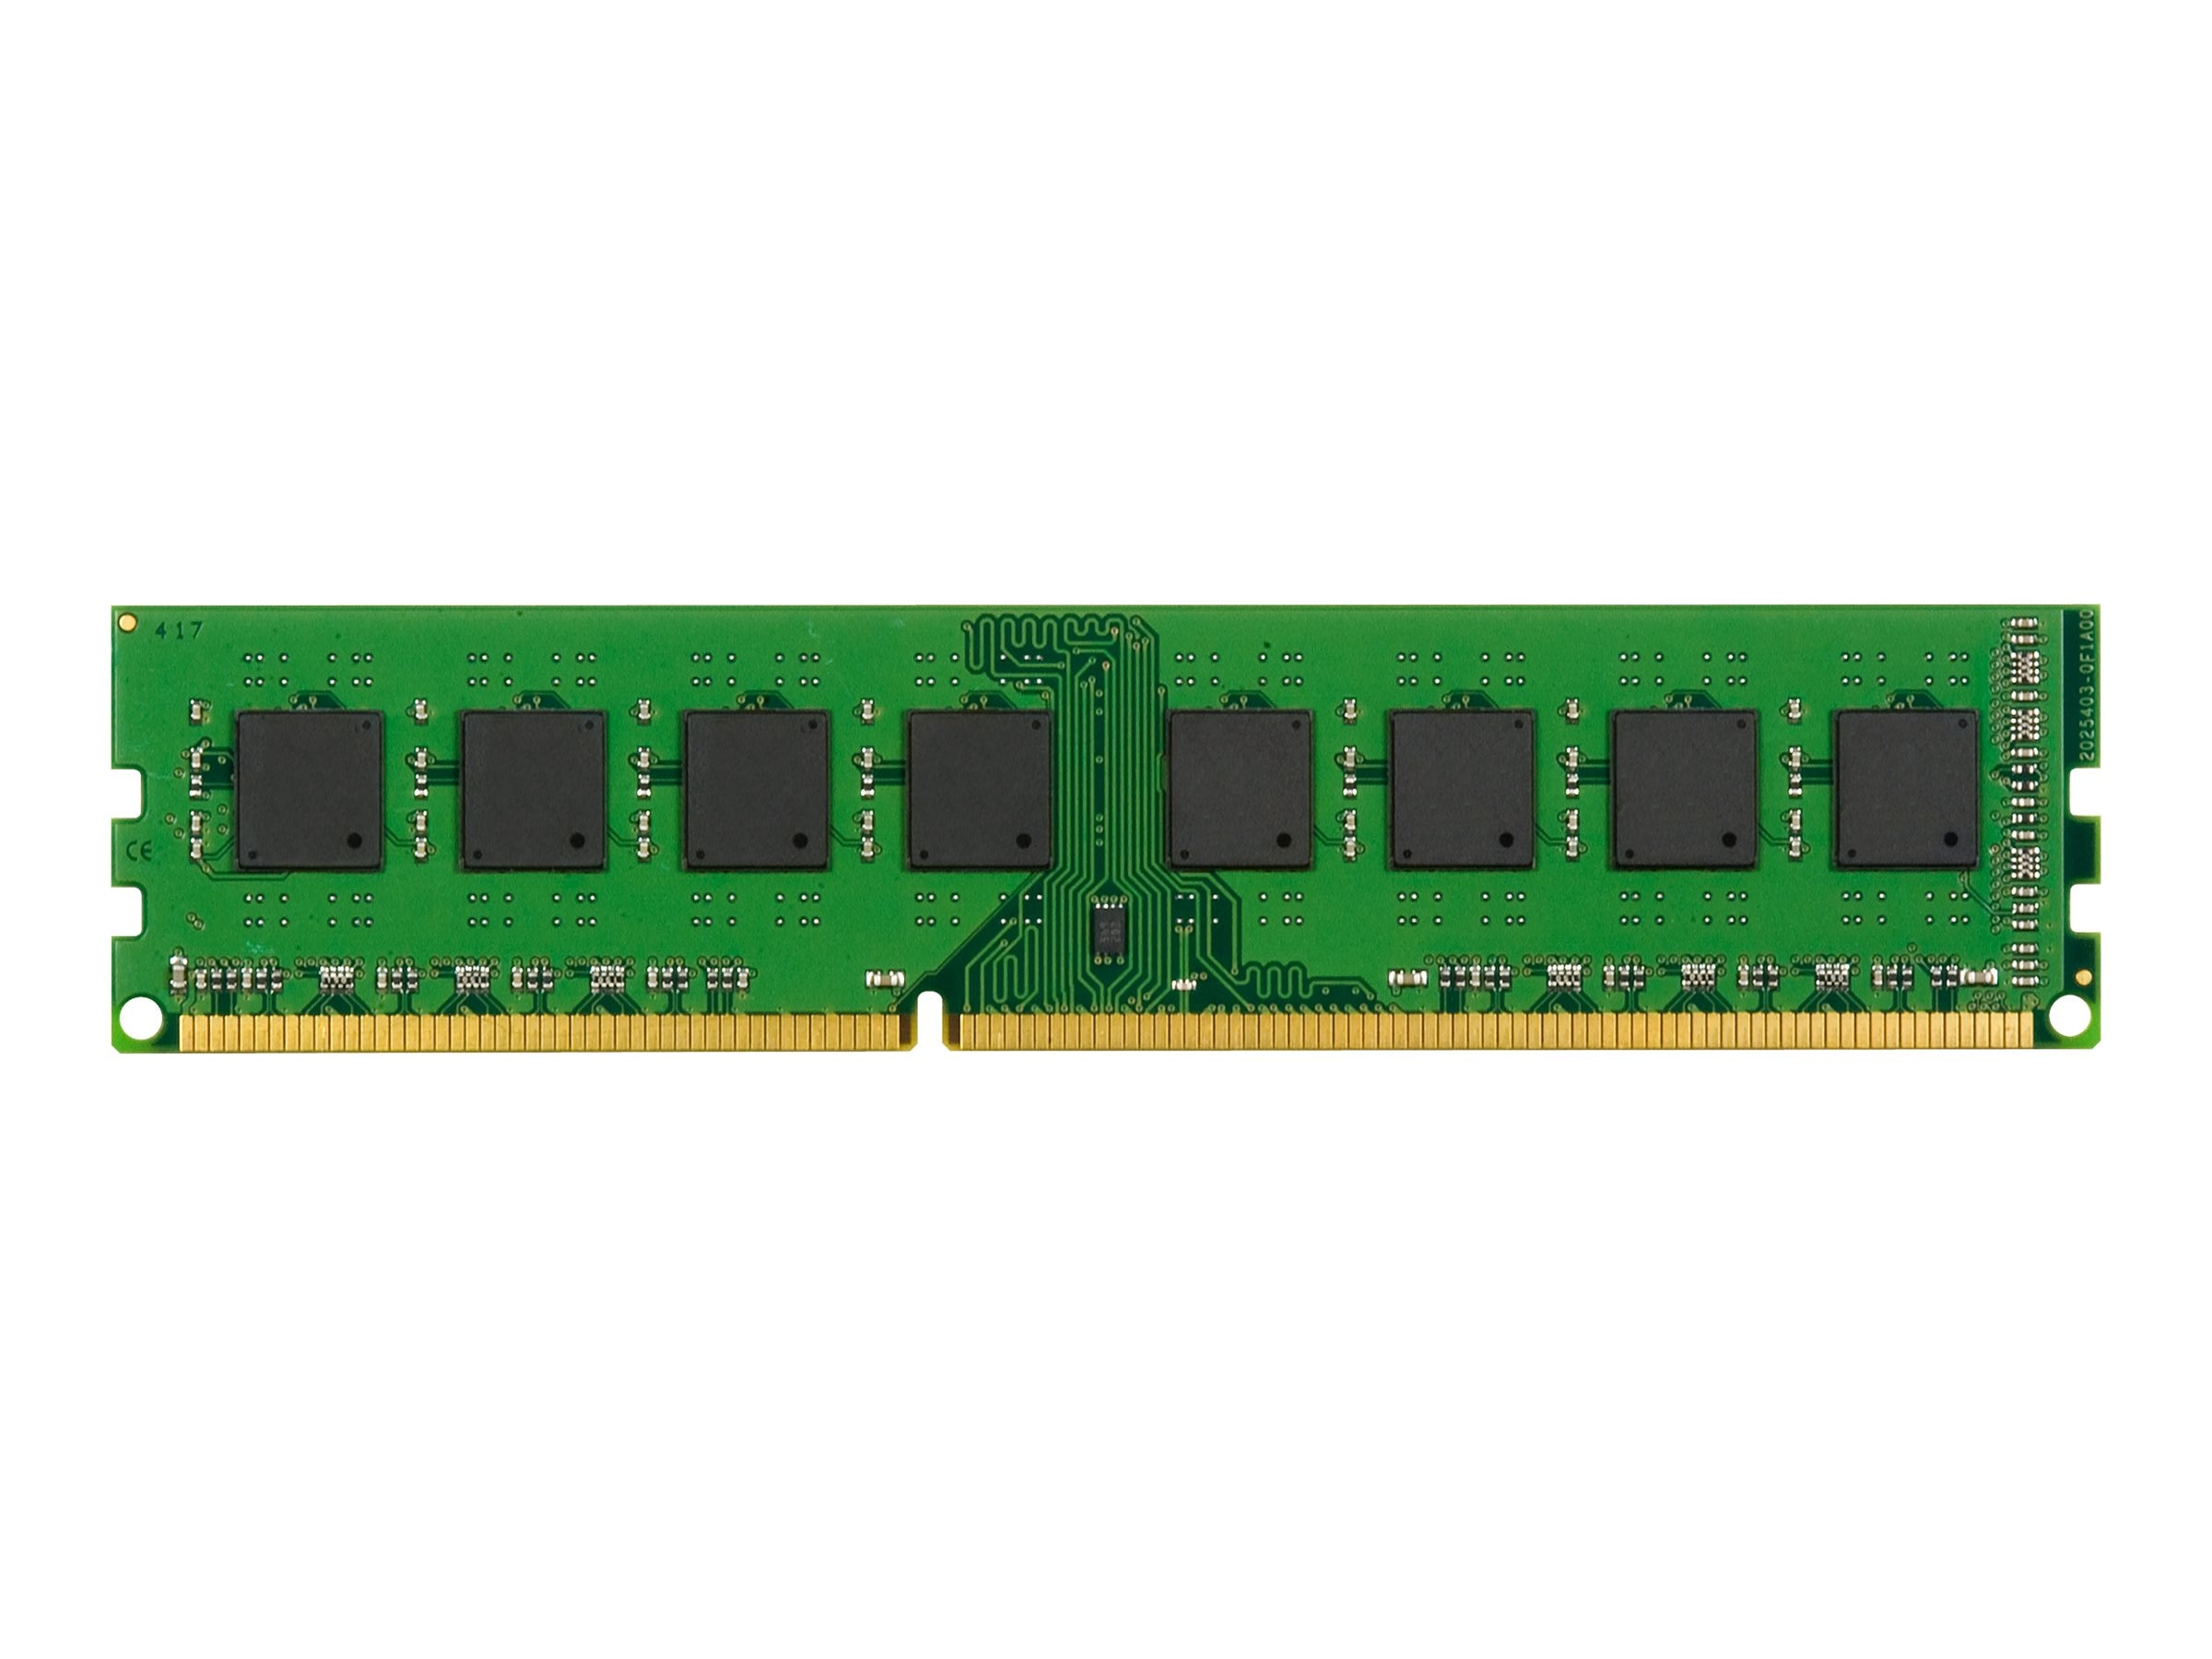 Kingston 8GB PC3-10600 240-pin DDR3 SDRAM DIMM for Select CQ Desktop, Elite, Pavilion, Presario Models, KTH9600B/8G, 13881986, Memory